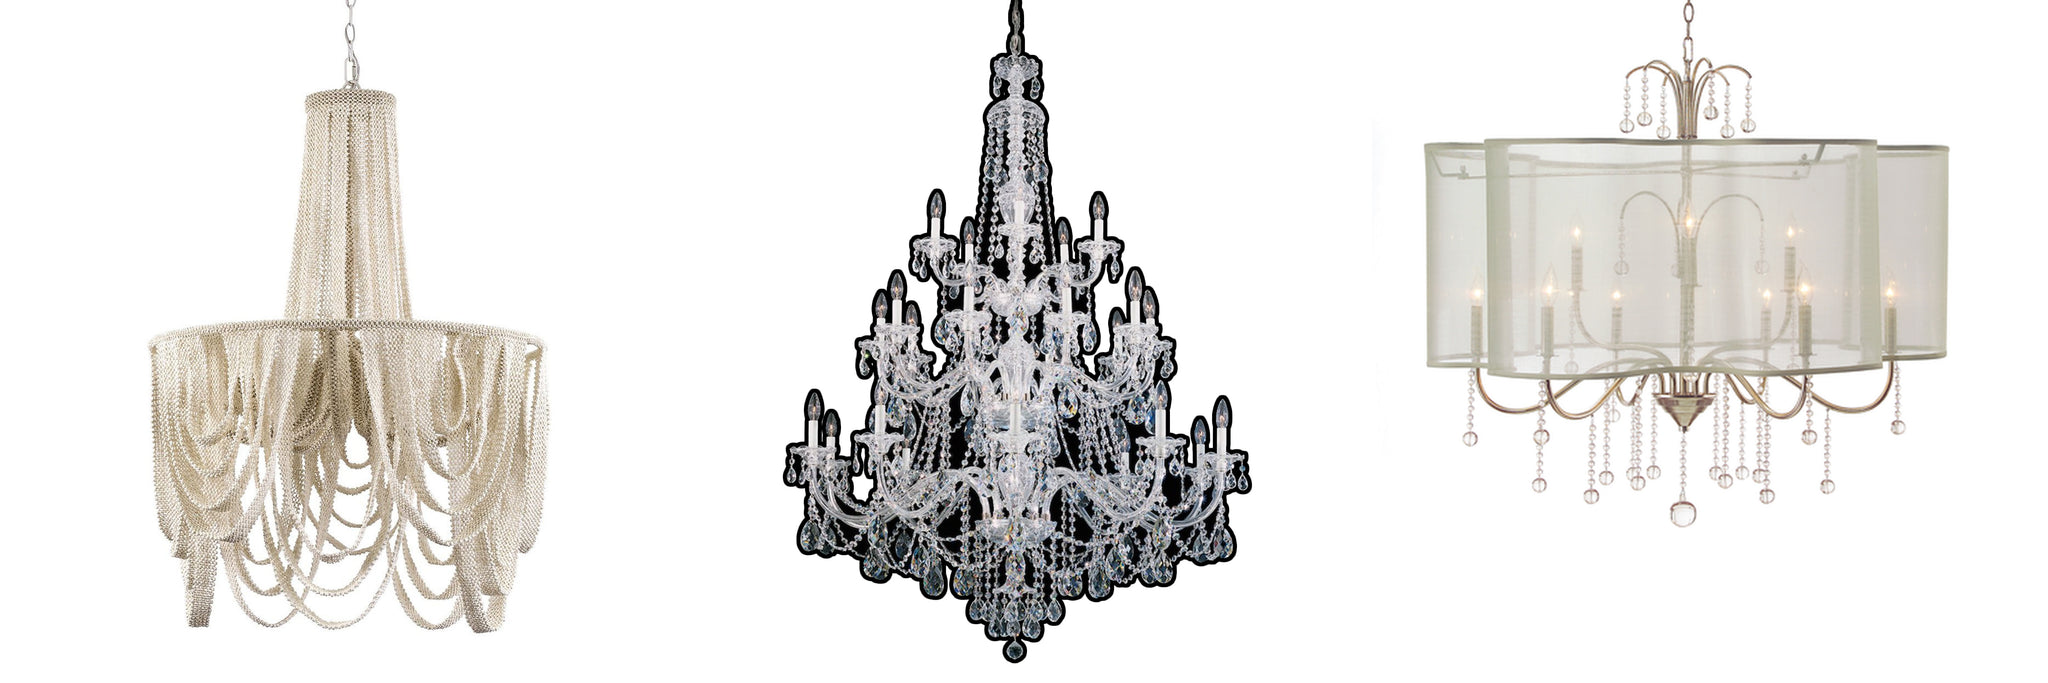 decorative French chandelier